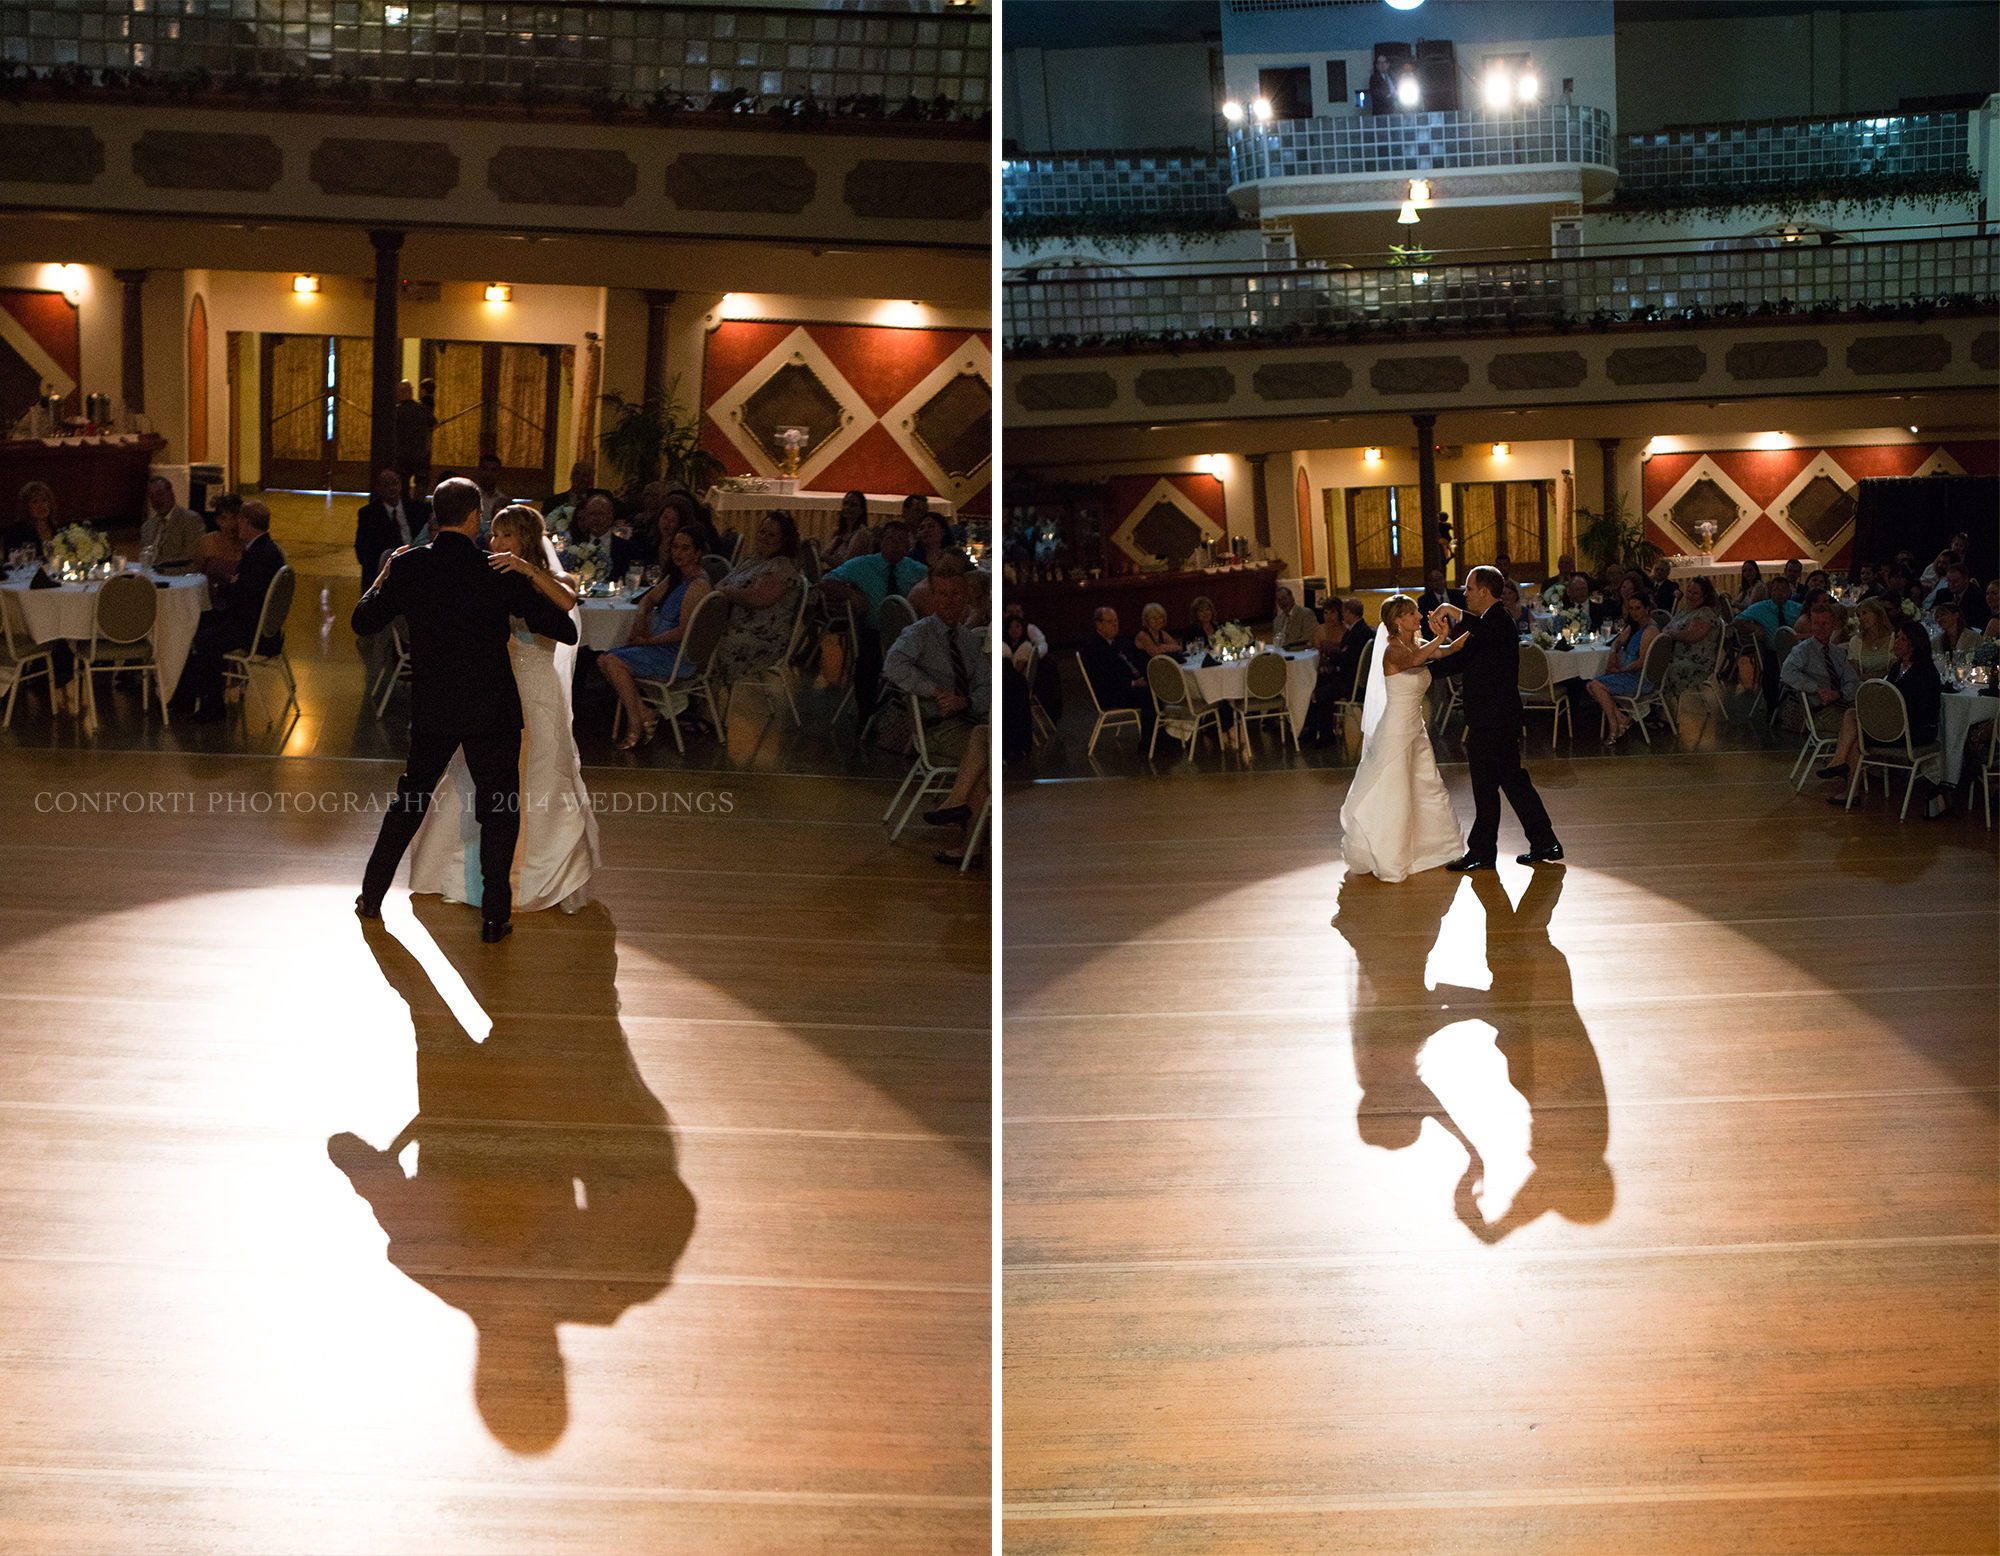 They had an AWESOME first dance, they did a whole swing routine! Eric from  Lakeside Entertainment  played lots of good swing music that the crowd was loving!